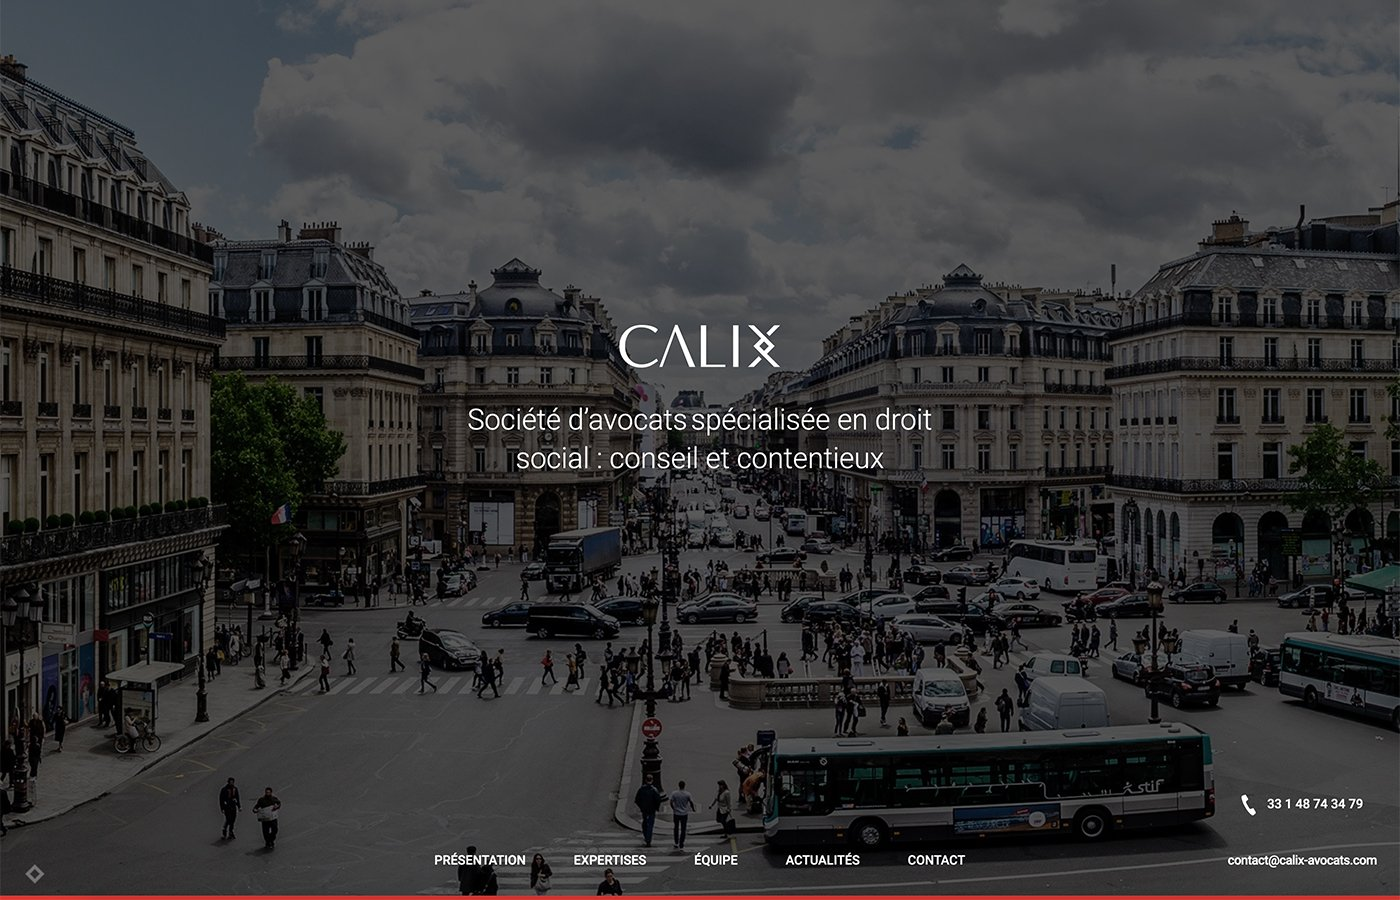 Capture du site internet Calix avocats